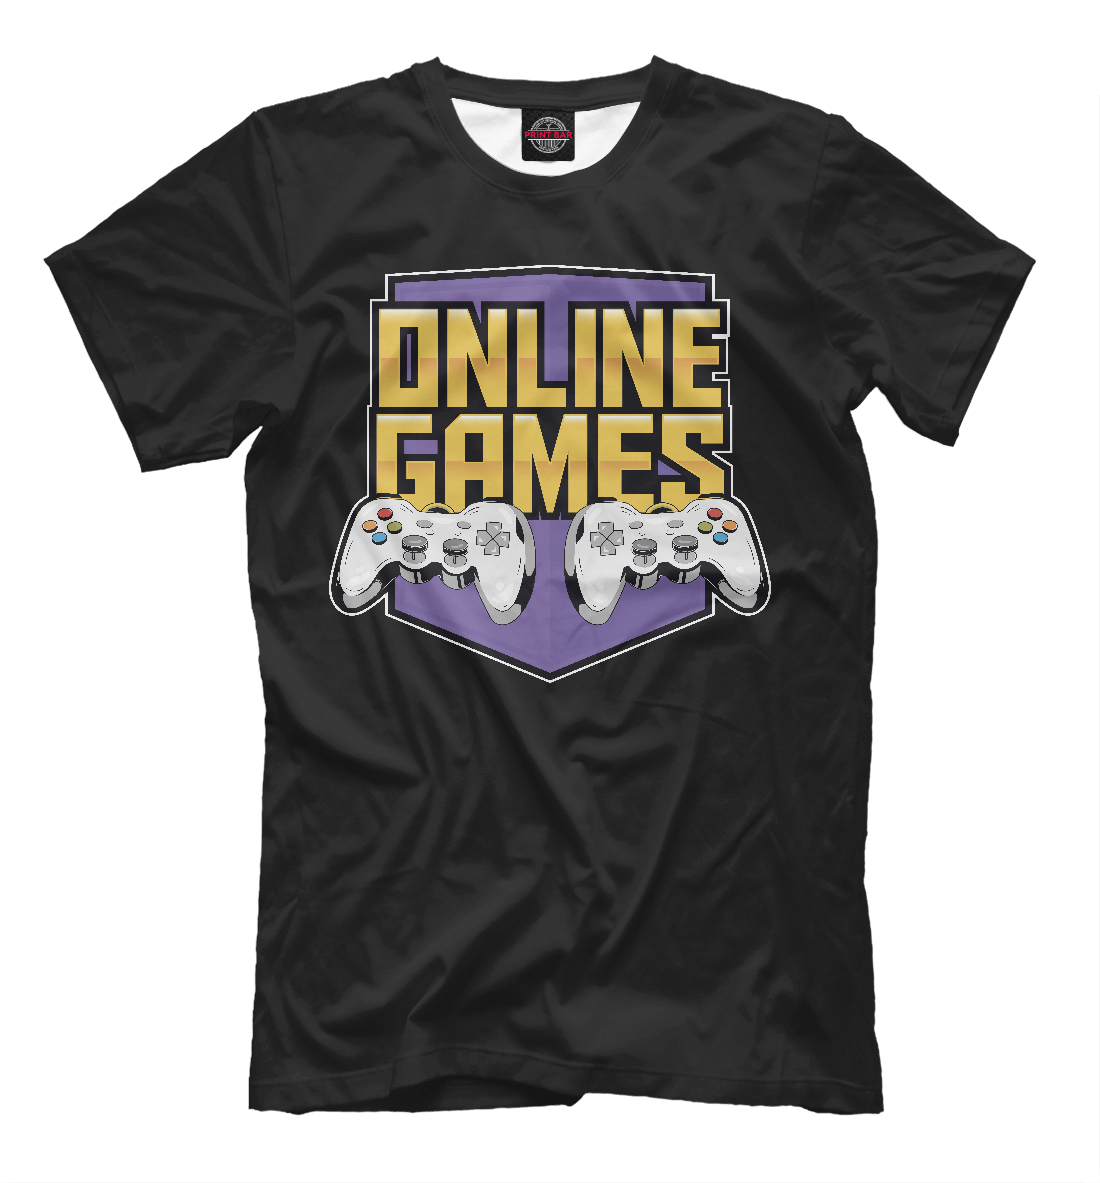 Online Games grenville armitage networking and online games